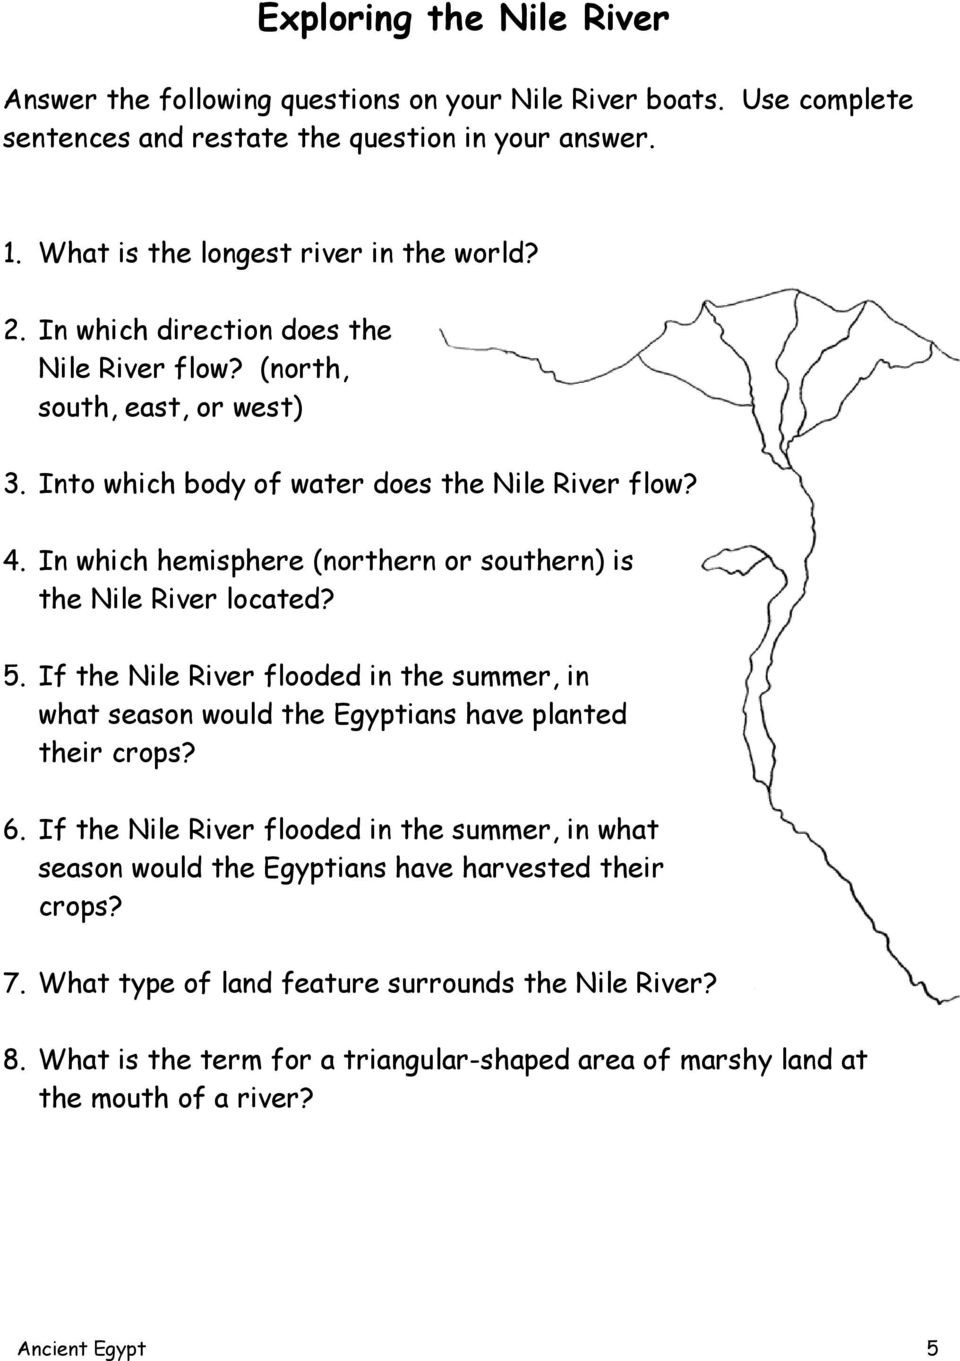 River Valley Civilizations Worksheet Answers Ancient Egypt Handouts Pdf Free Download